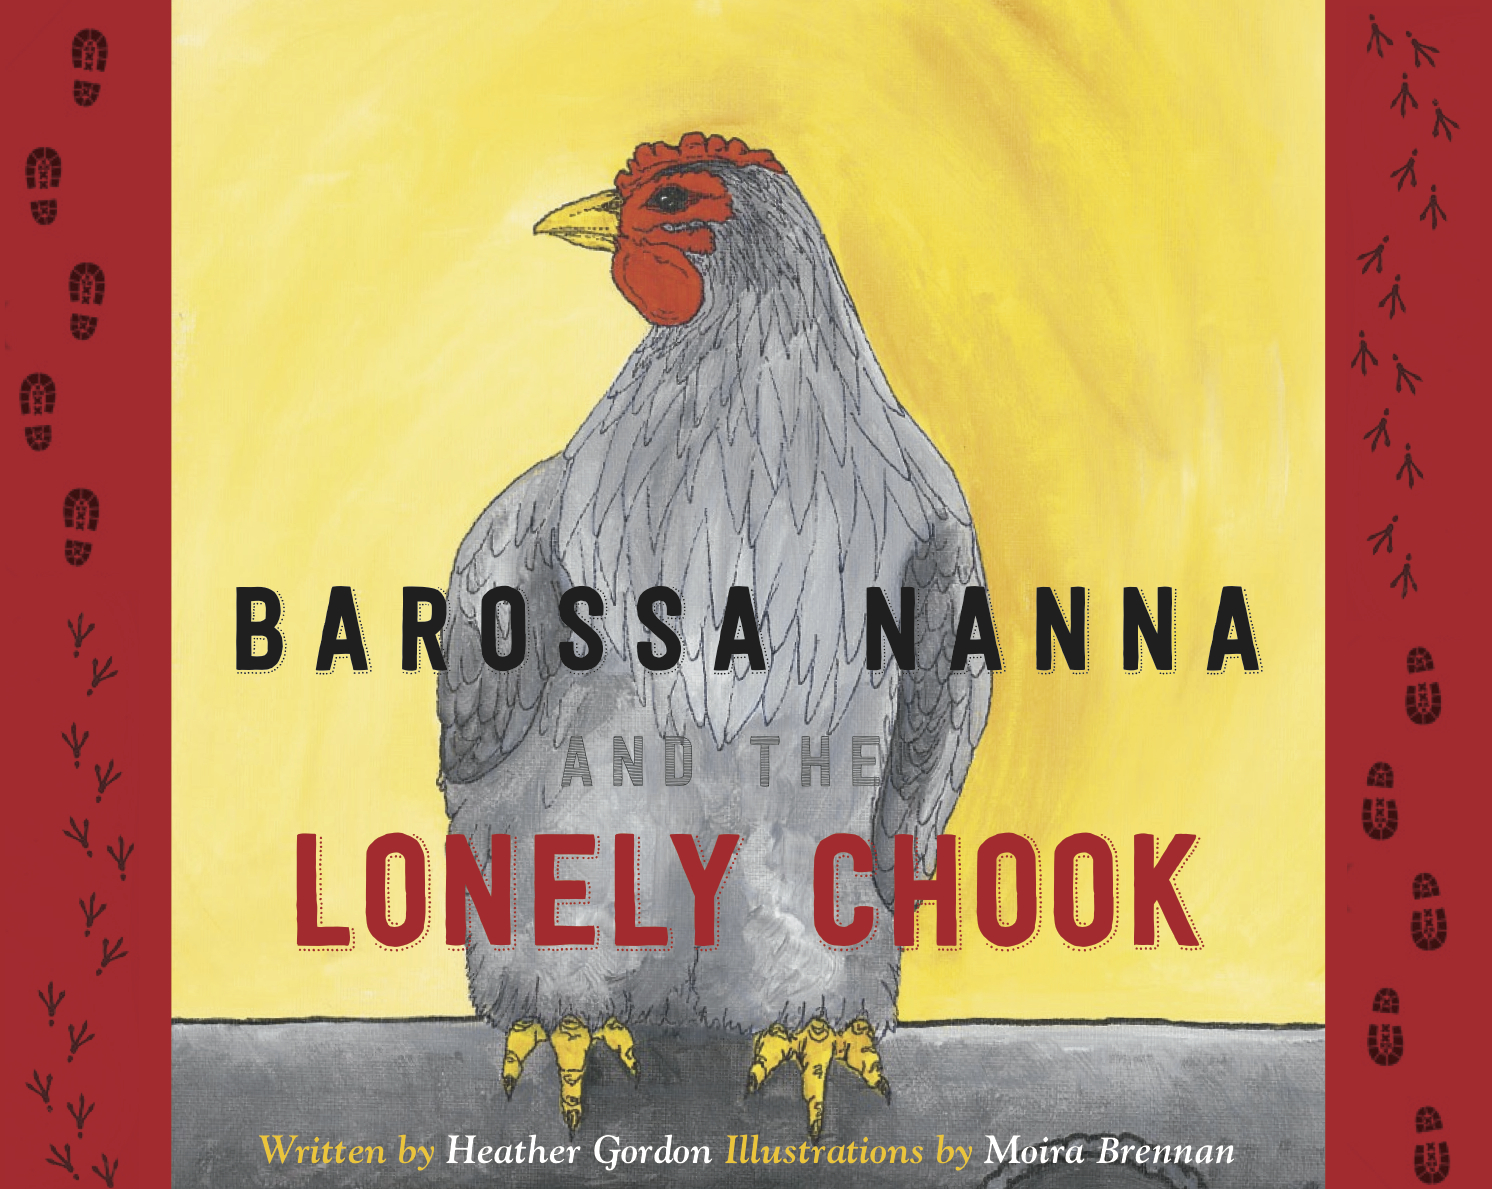 Barossa-nanna-and-the-lonely-chook